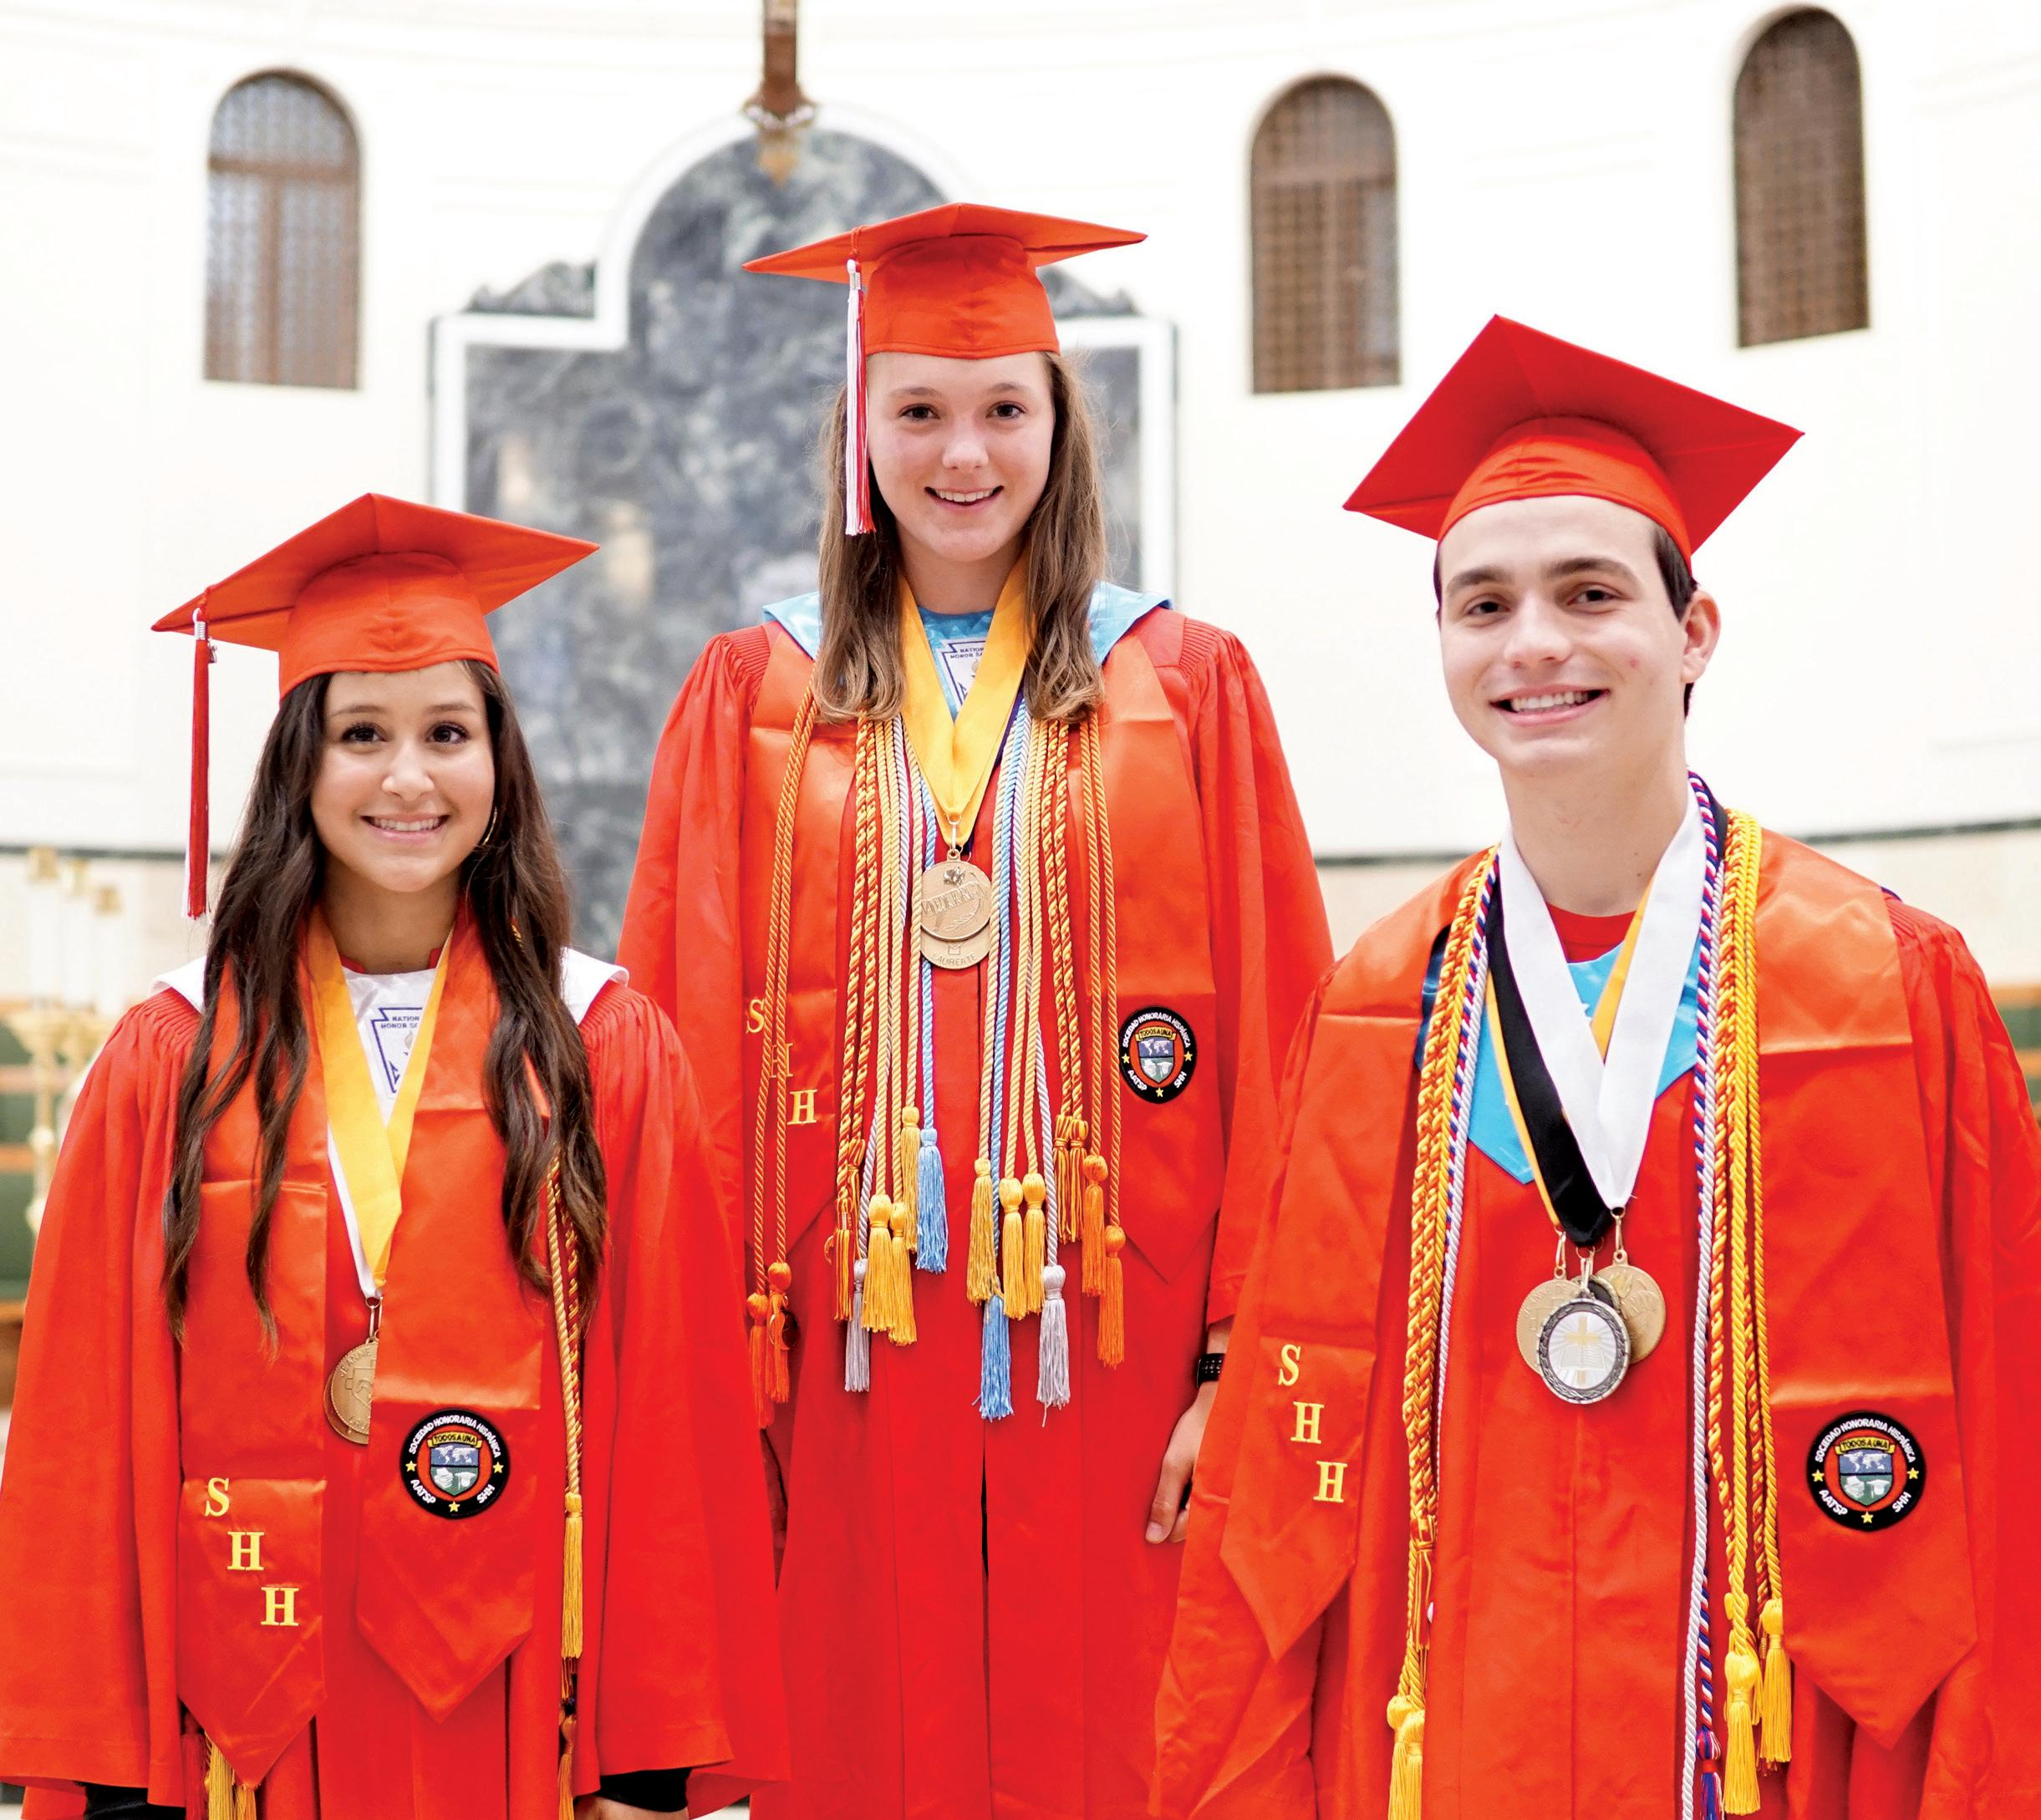 Page 12 of Diocesan Valedictorians and Salutatorians say high schools have prepared them for their future